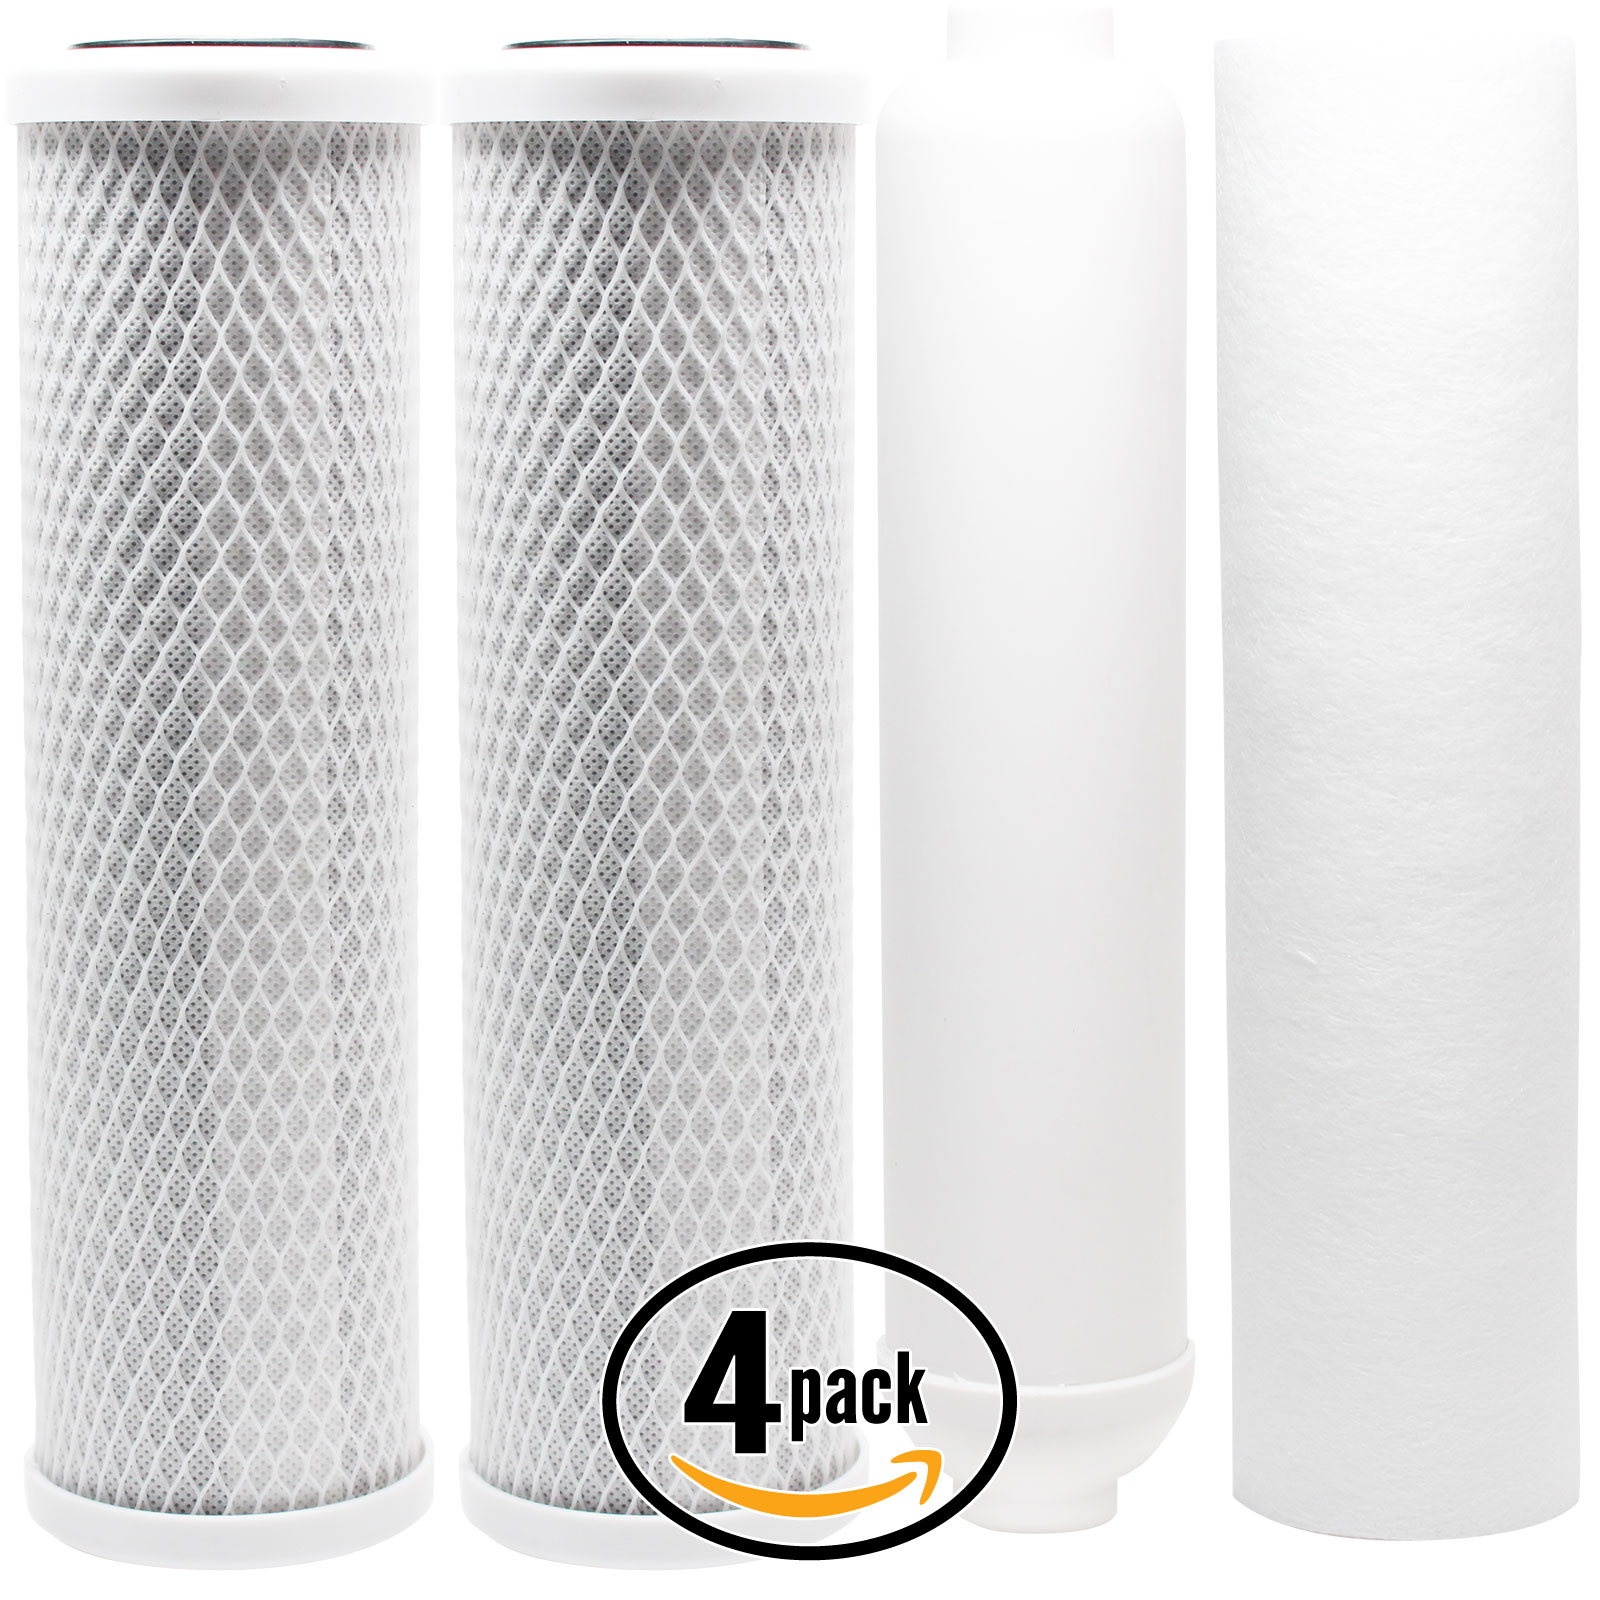 4-Pack Replacement Filter Kit for APEC ROES-PH75 RO System - Includes Carbon Block Filters, PP Sediment Filter & Inline Filter Cartridge - Denali Pure Brand